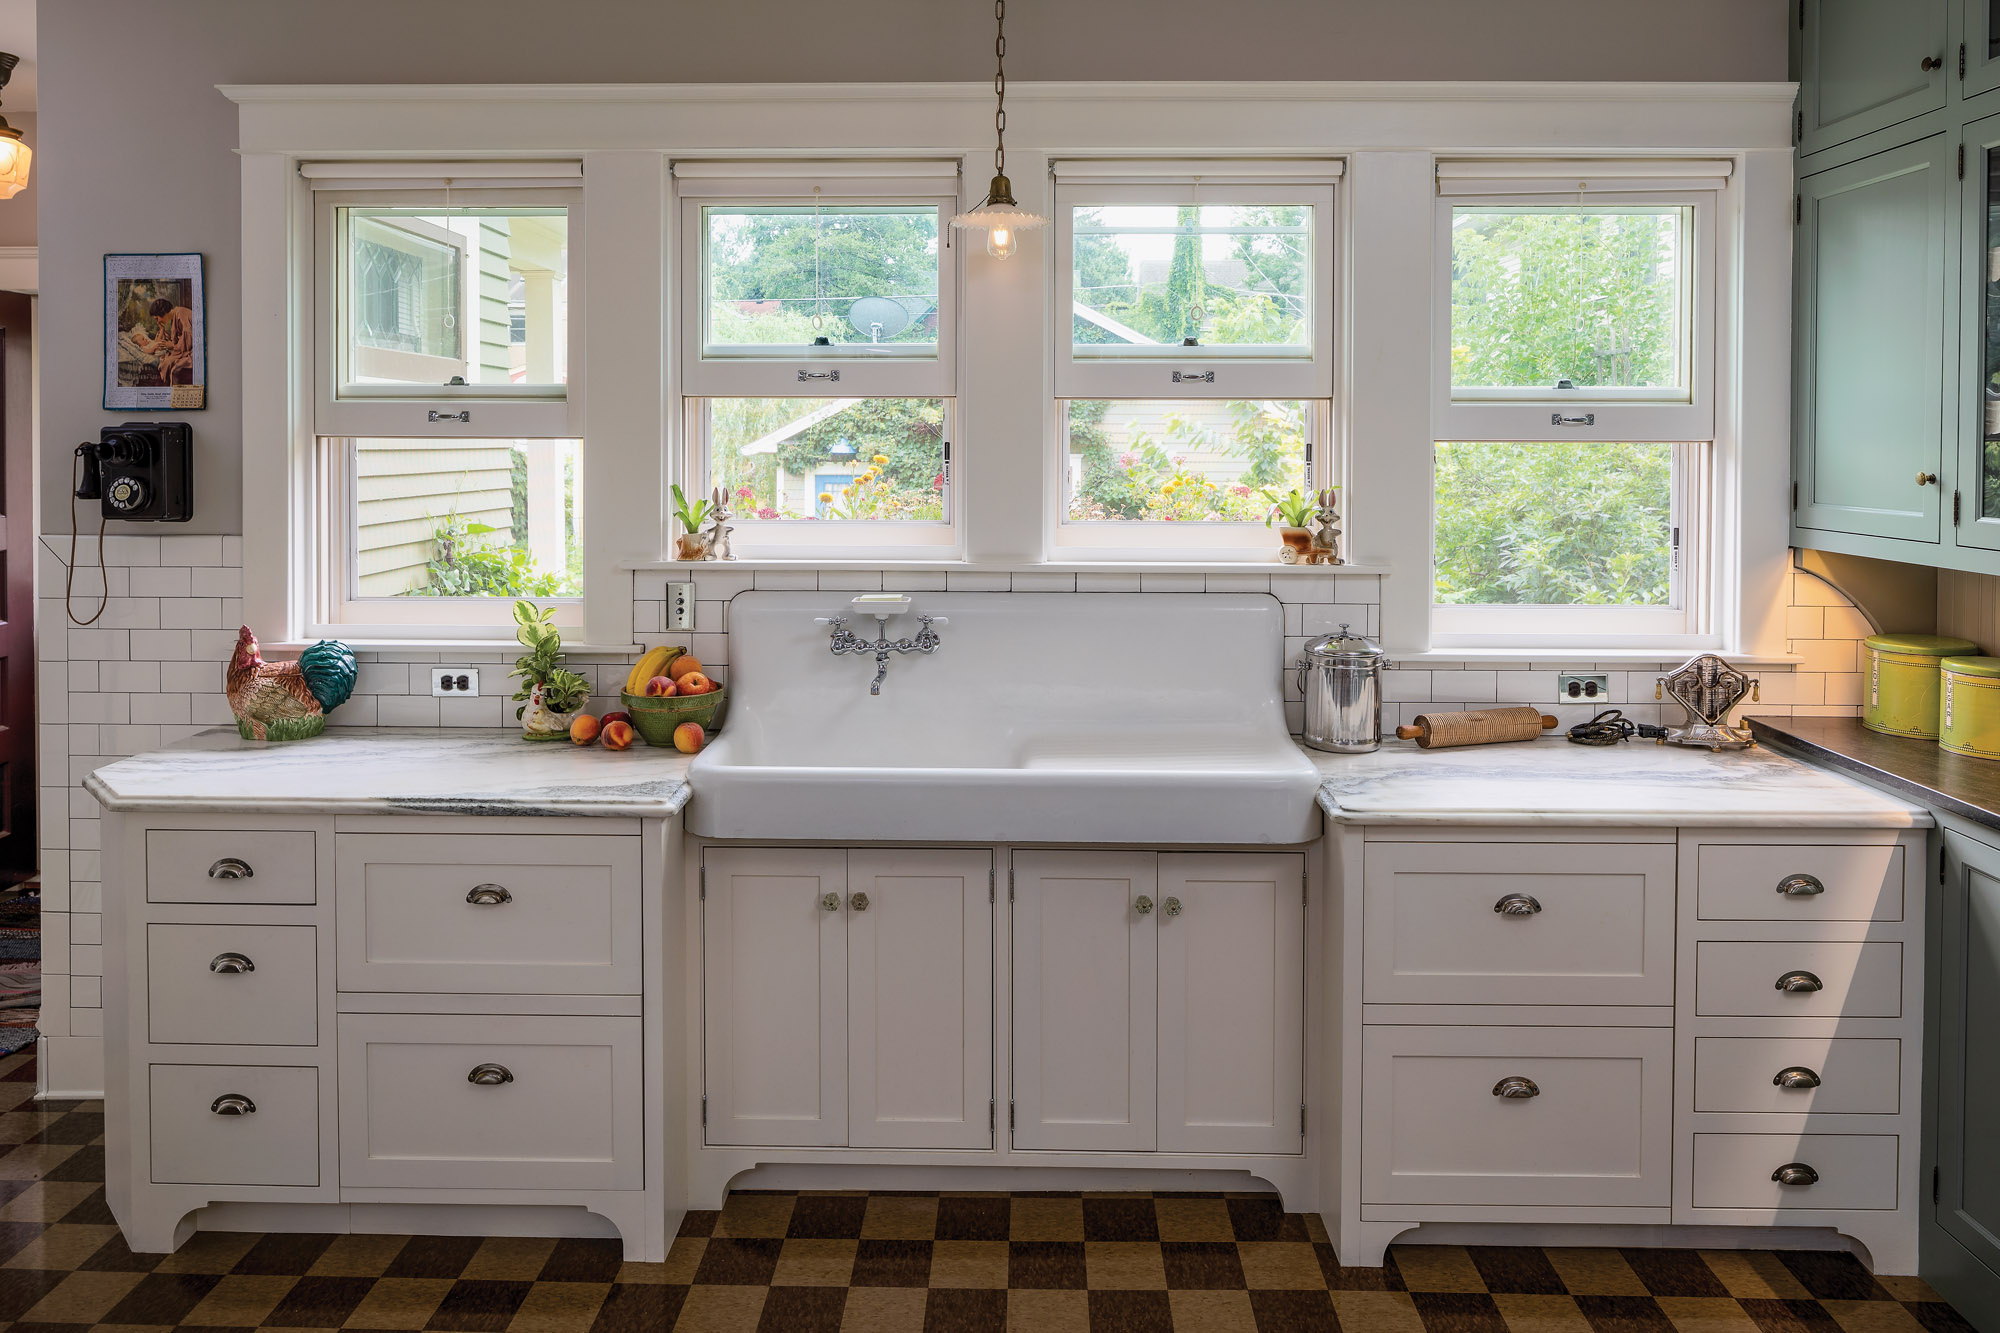 The new windows had to be sized to fit around the sink's high backsplash.